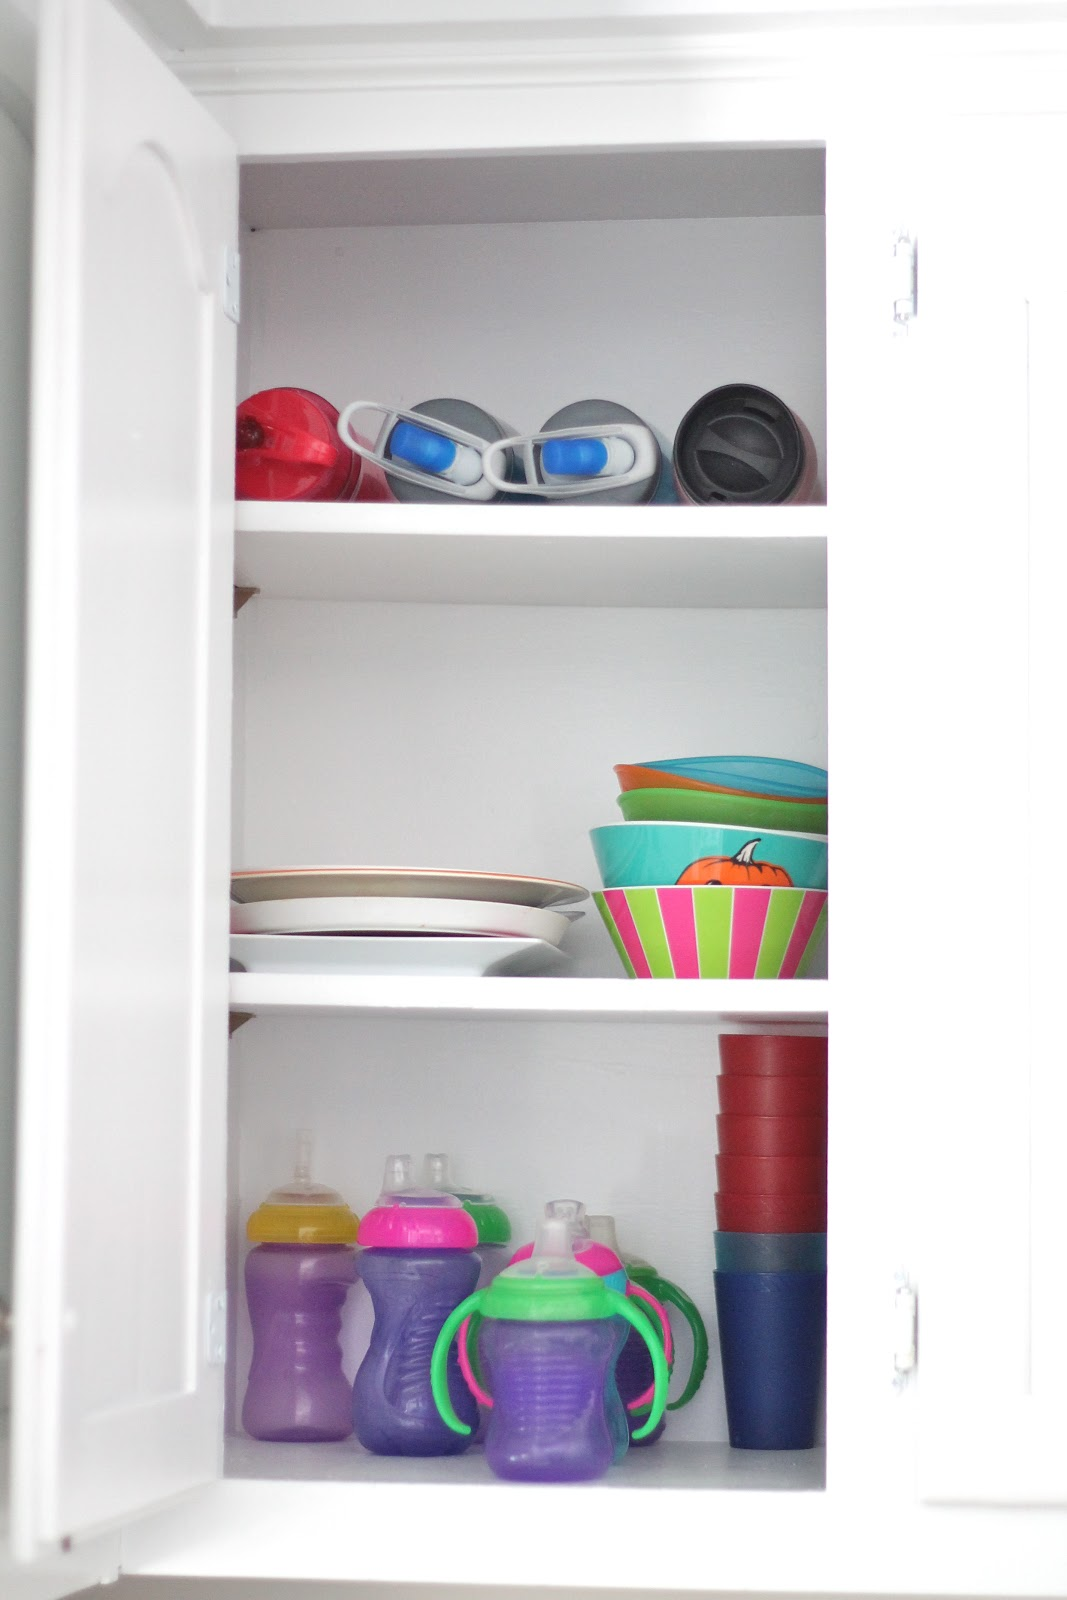 How To Organize Your Kitchen Cabinets Julie Blanner